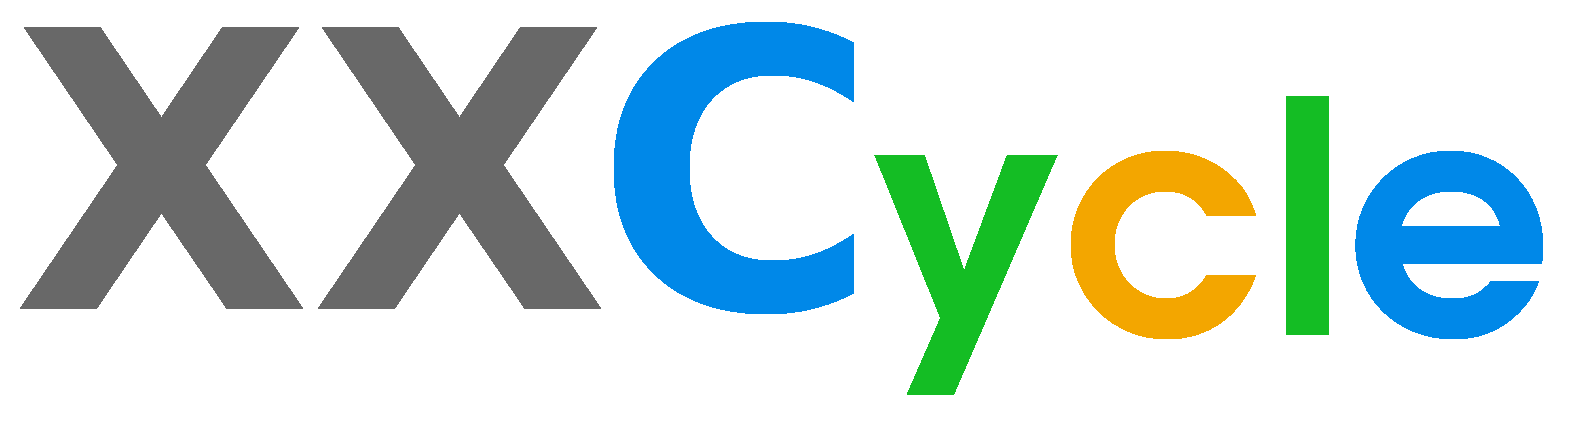 XXcycle, my WebStore dedicated to Bicycle.